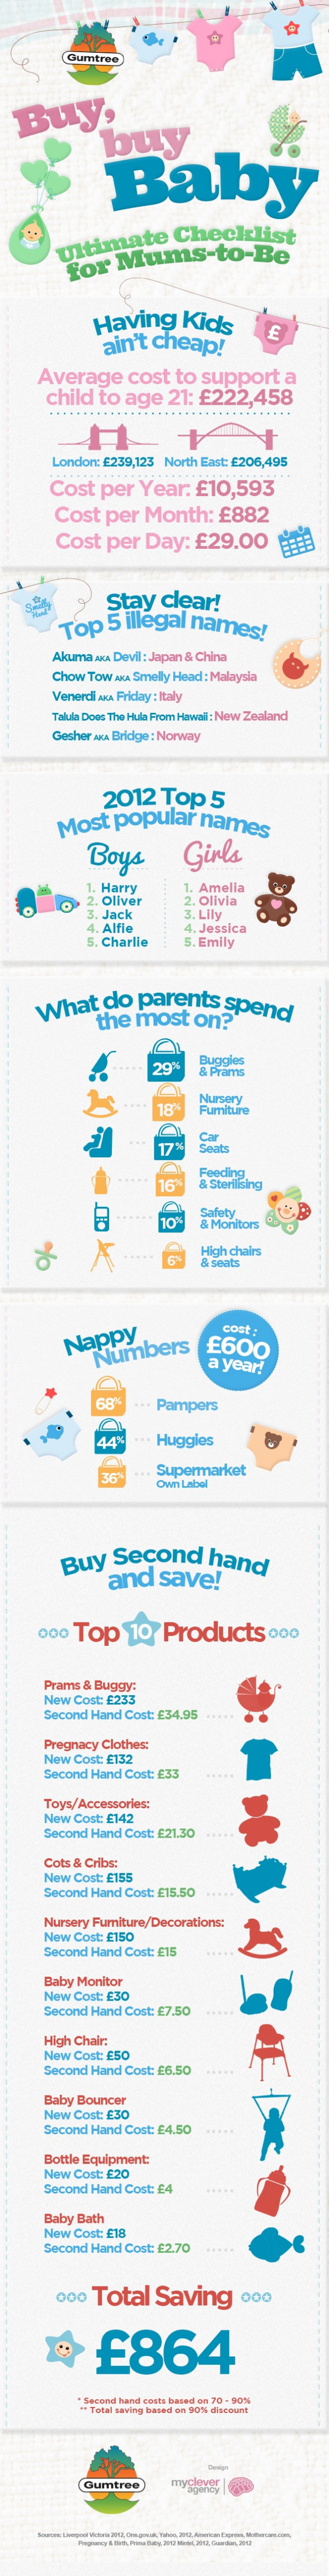 Buy, buy Baby - Ultimate Checklist for Mums-to-Be Infographic